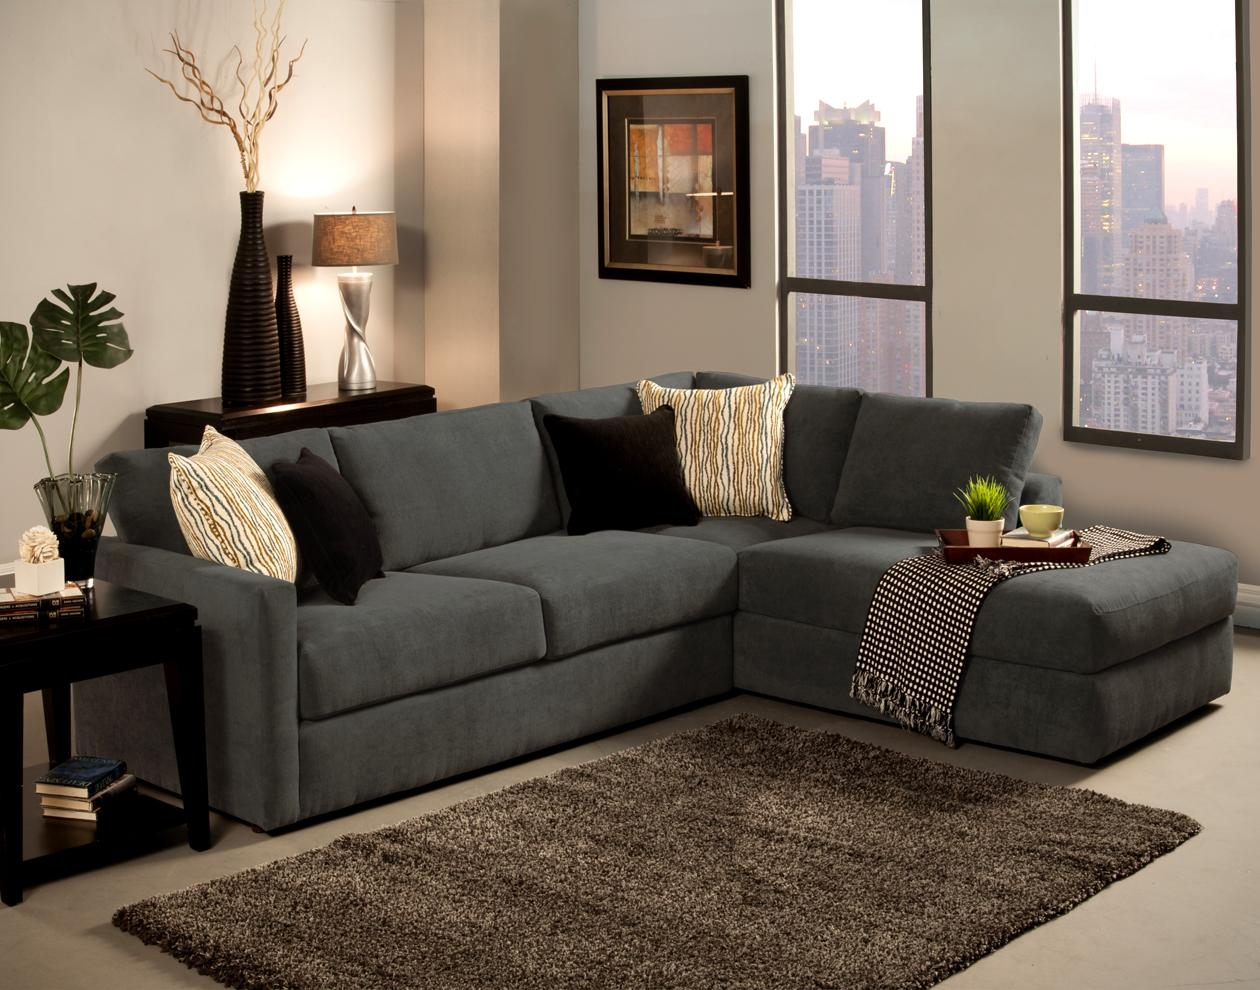 Sofa And Chaise Lounge Set Perfectly Wn7 | Umpsa 78 Sofas Intended For Sofas And Chaises Lounge Sets (Image 15 of 20)